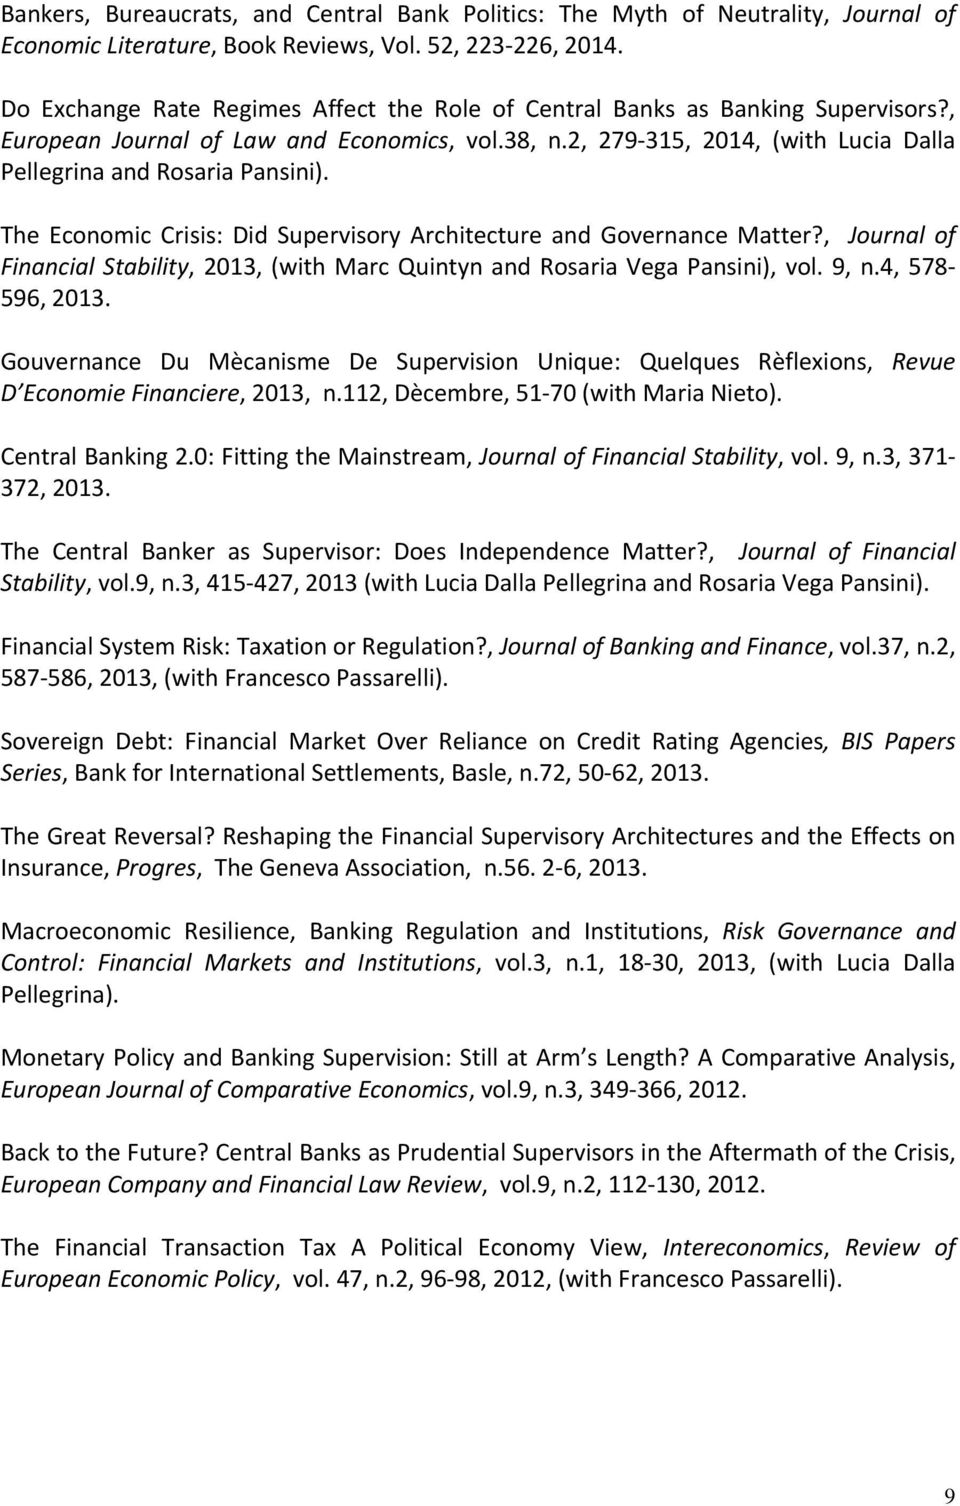 (0.41) The Economic Crisis: Did Supervisory Architecture and Governance Matter?, Journal of Financial Stability, 2013, (with Marc Quintyn and Rosaria Vega Pansini), vol. 9, n.4, 578 596, 2013. (1.